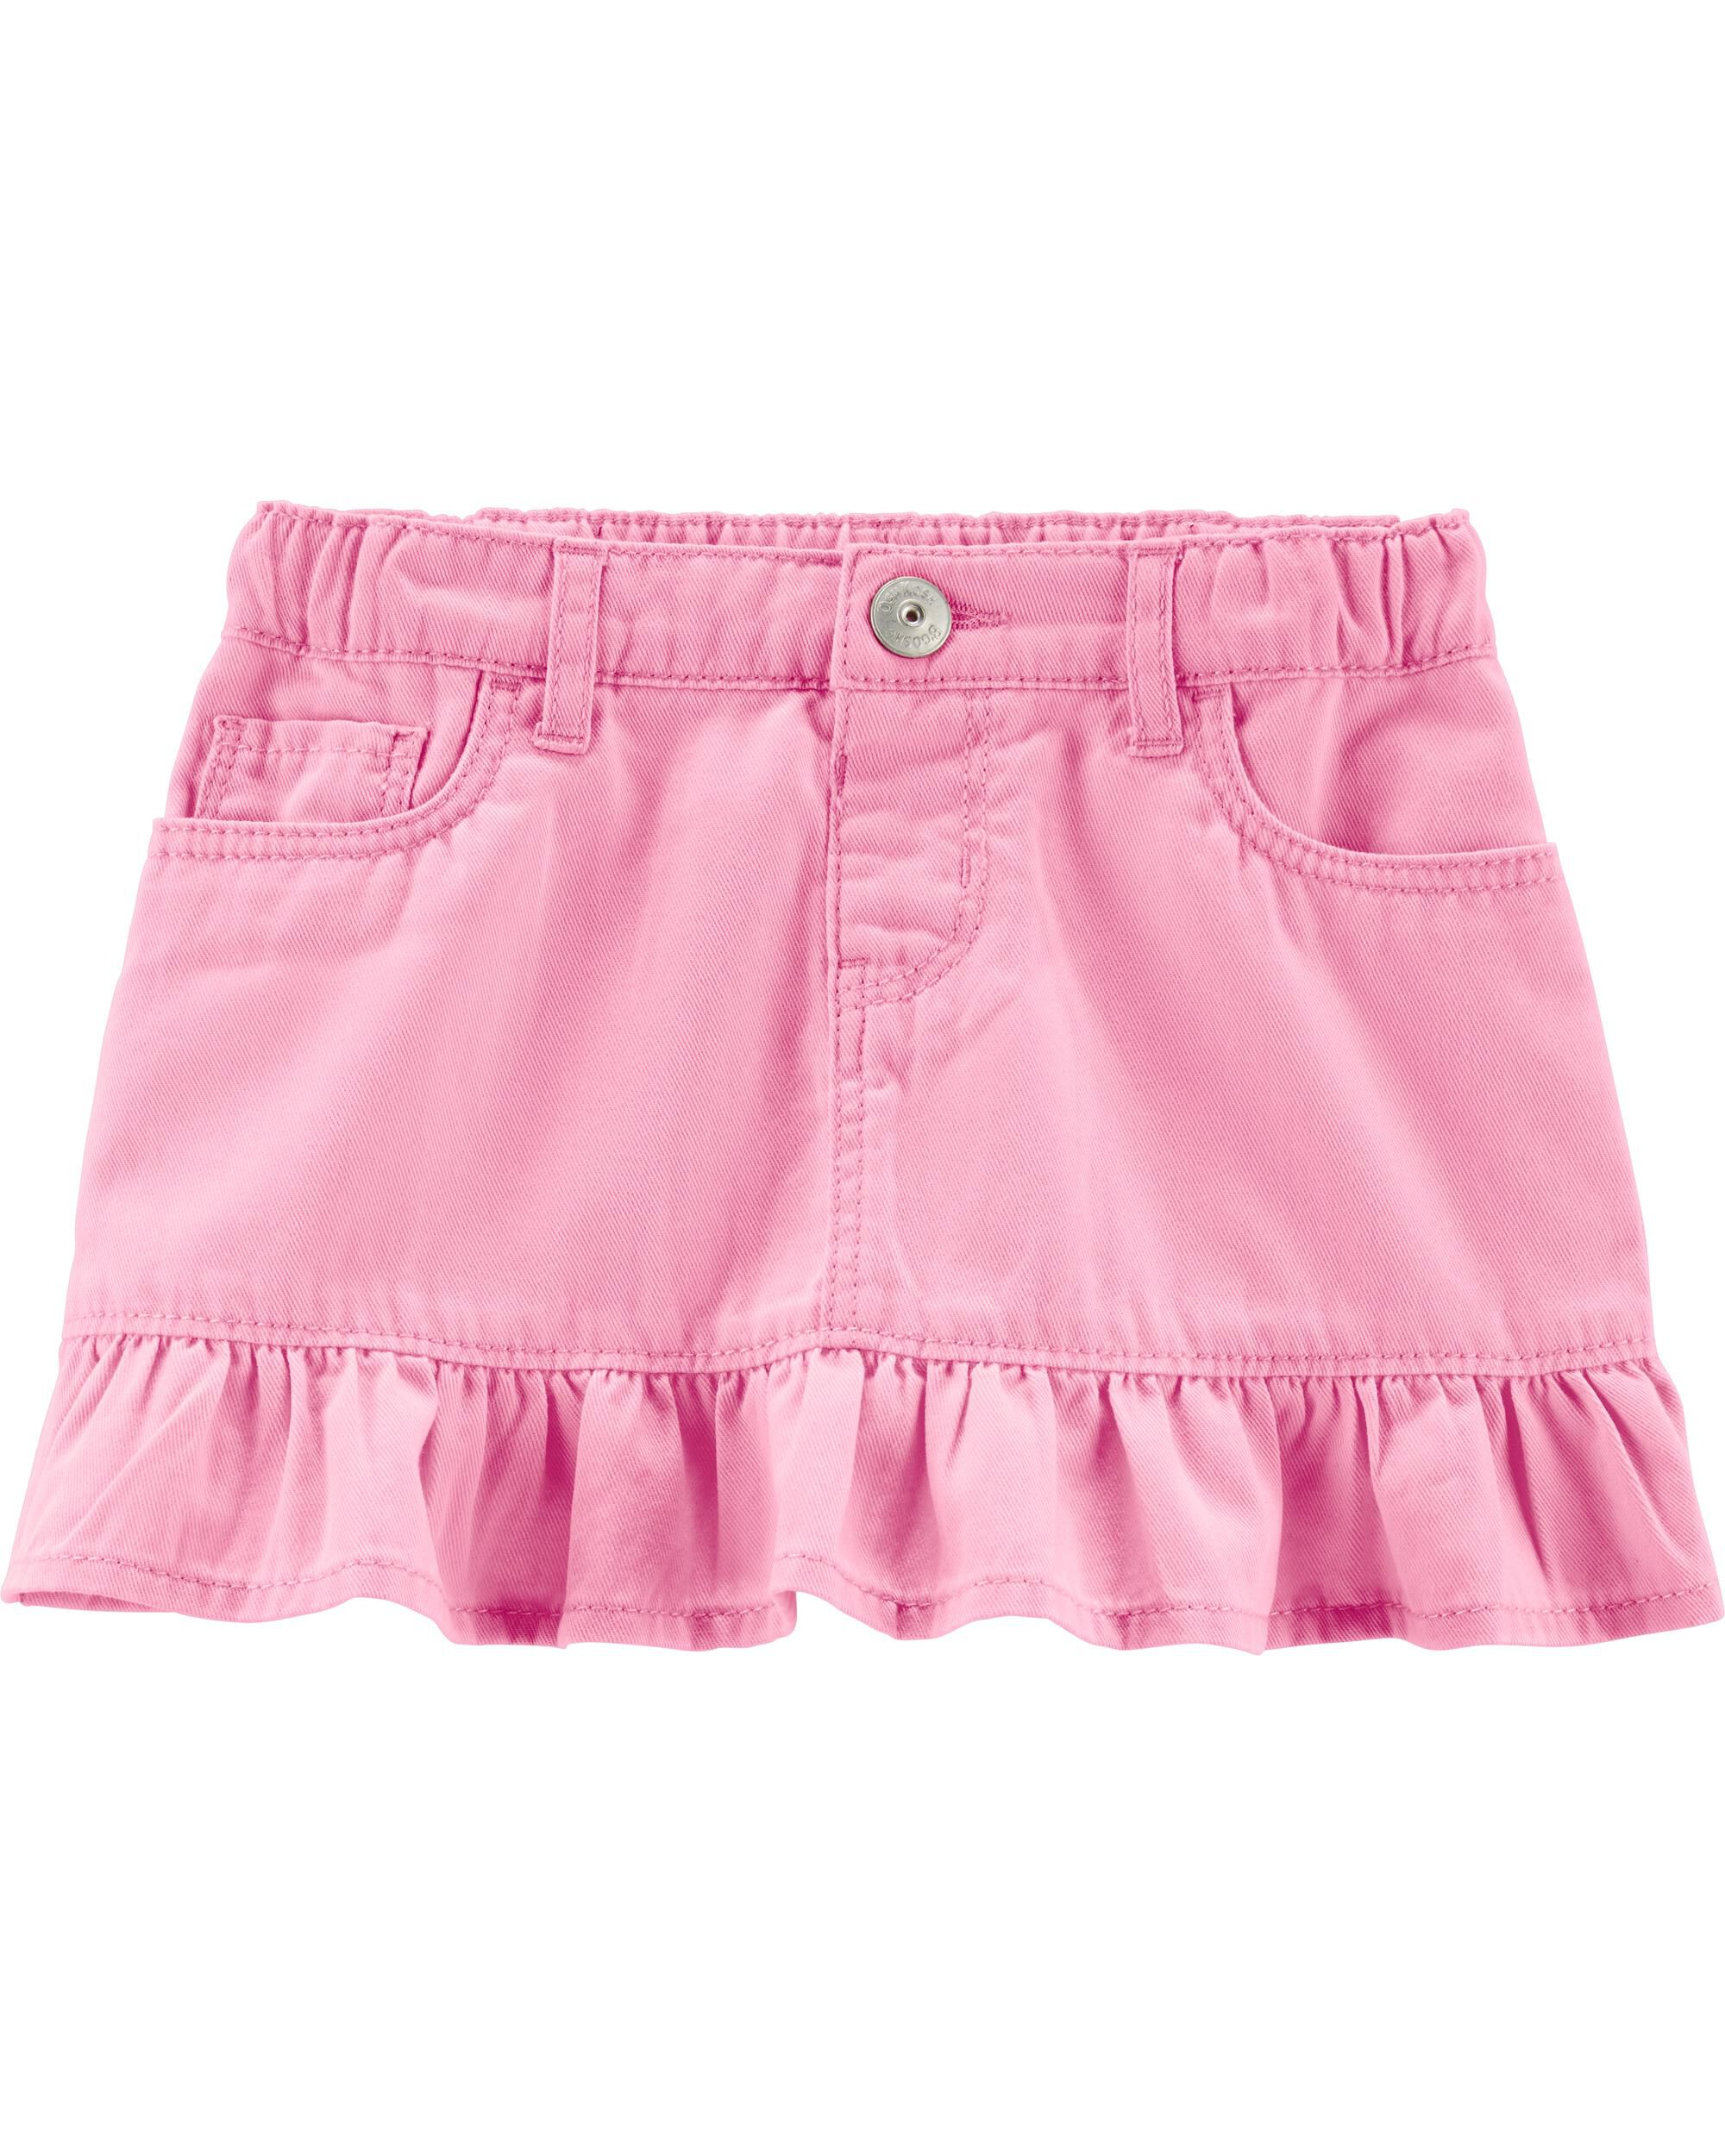 *Clearance*  Pink Ruffle Skirt